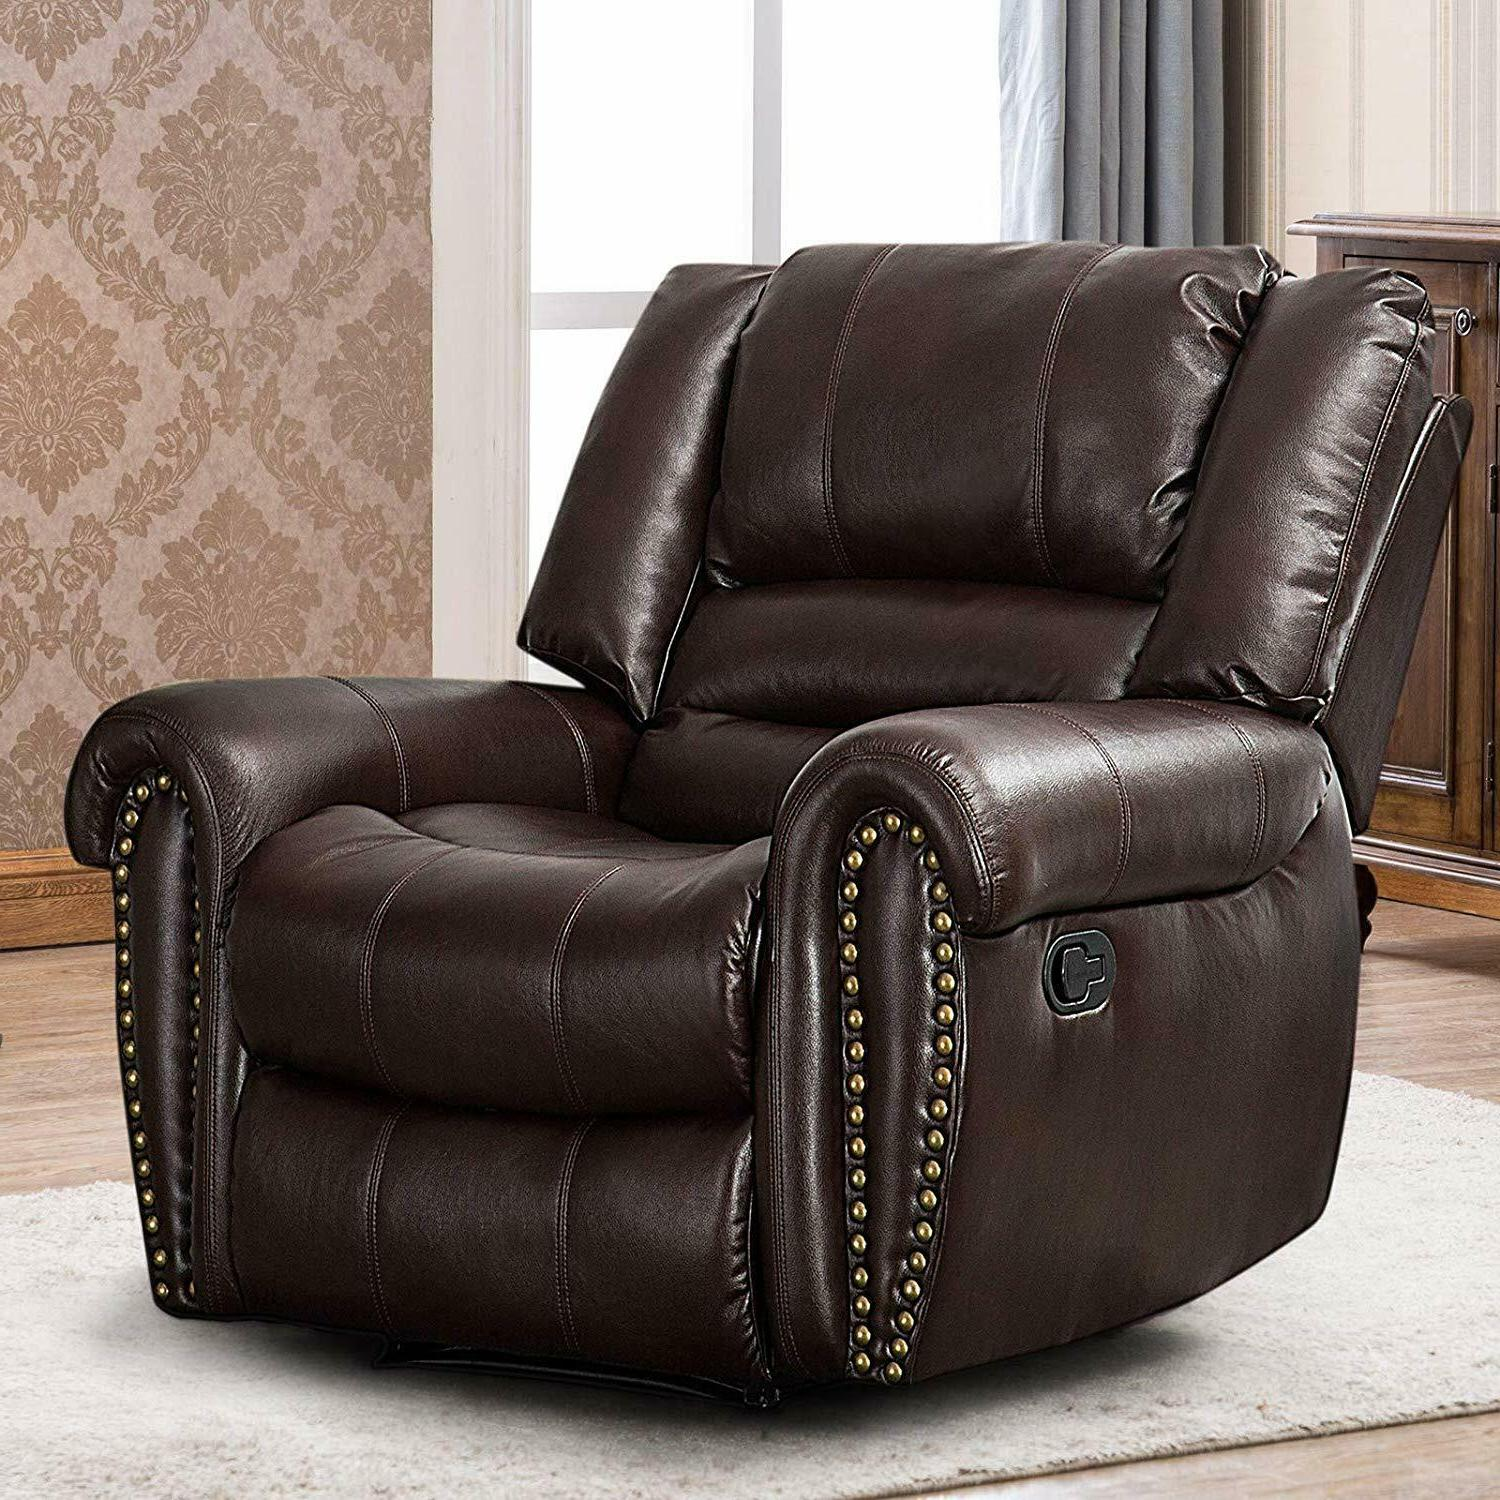 leather recliner chair traditional living room lounge